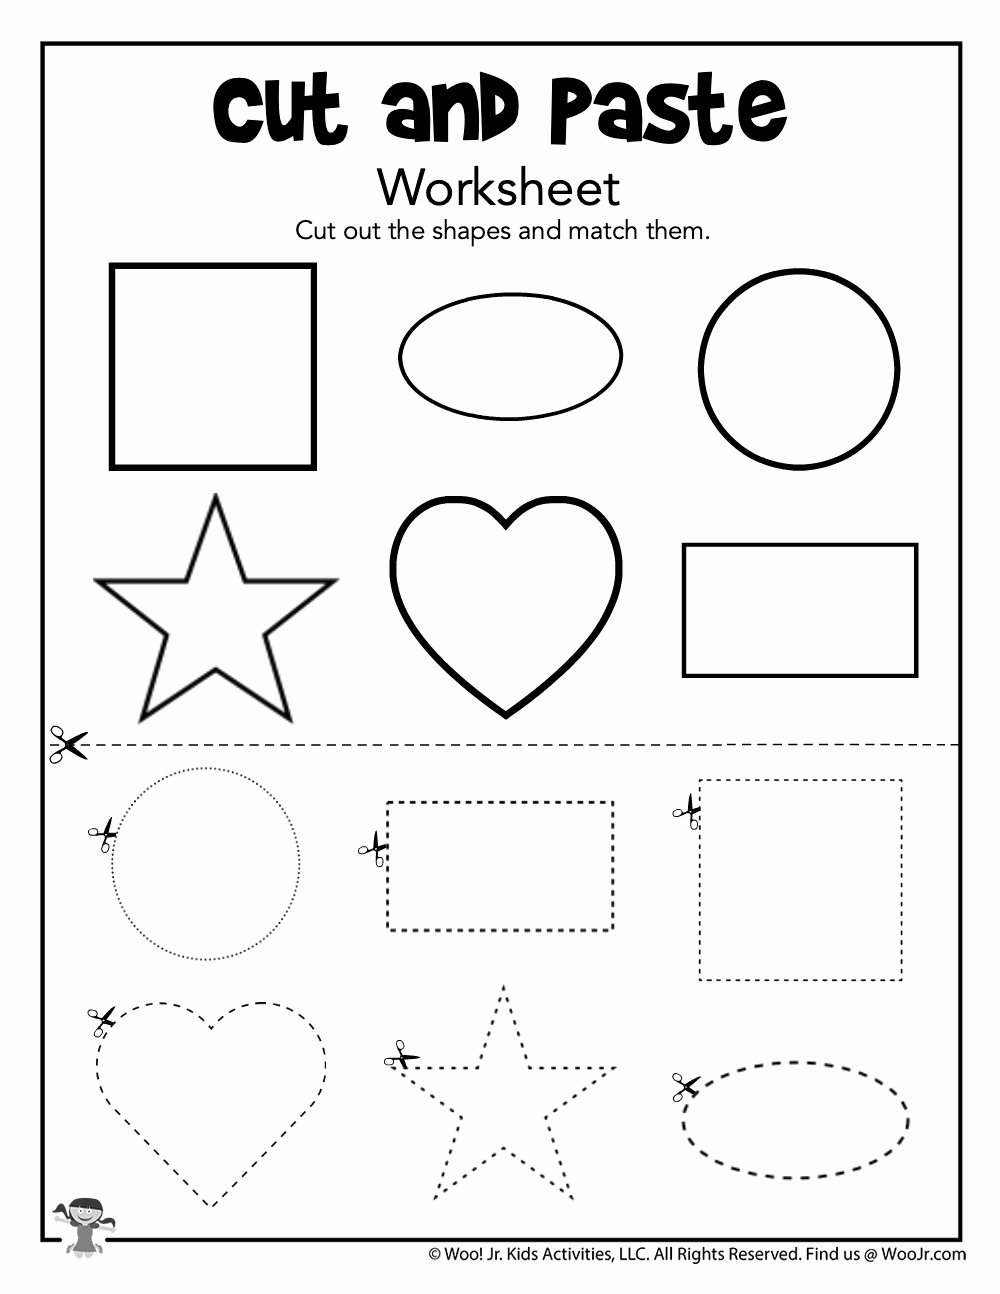 Cutting Shapes Worksheets for Preschoolers Kids Cut and Paste Matching Shapes Worksheet